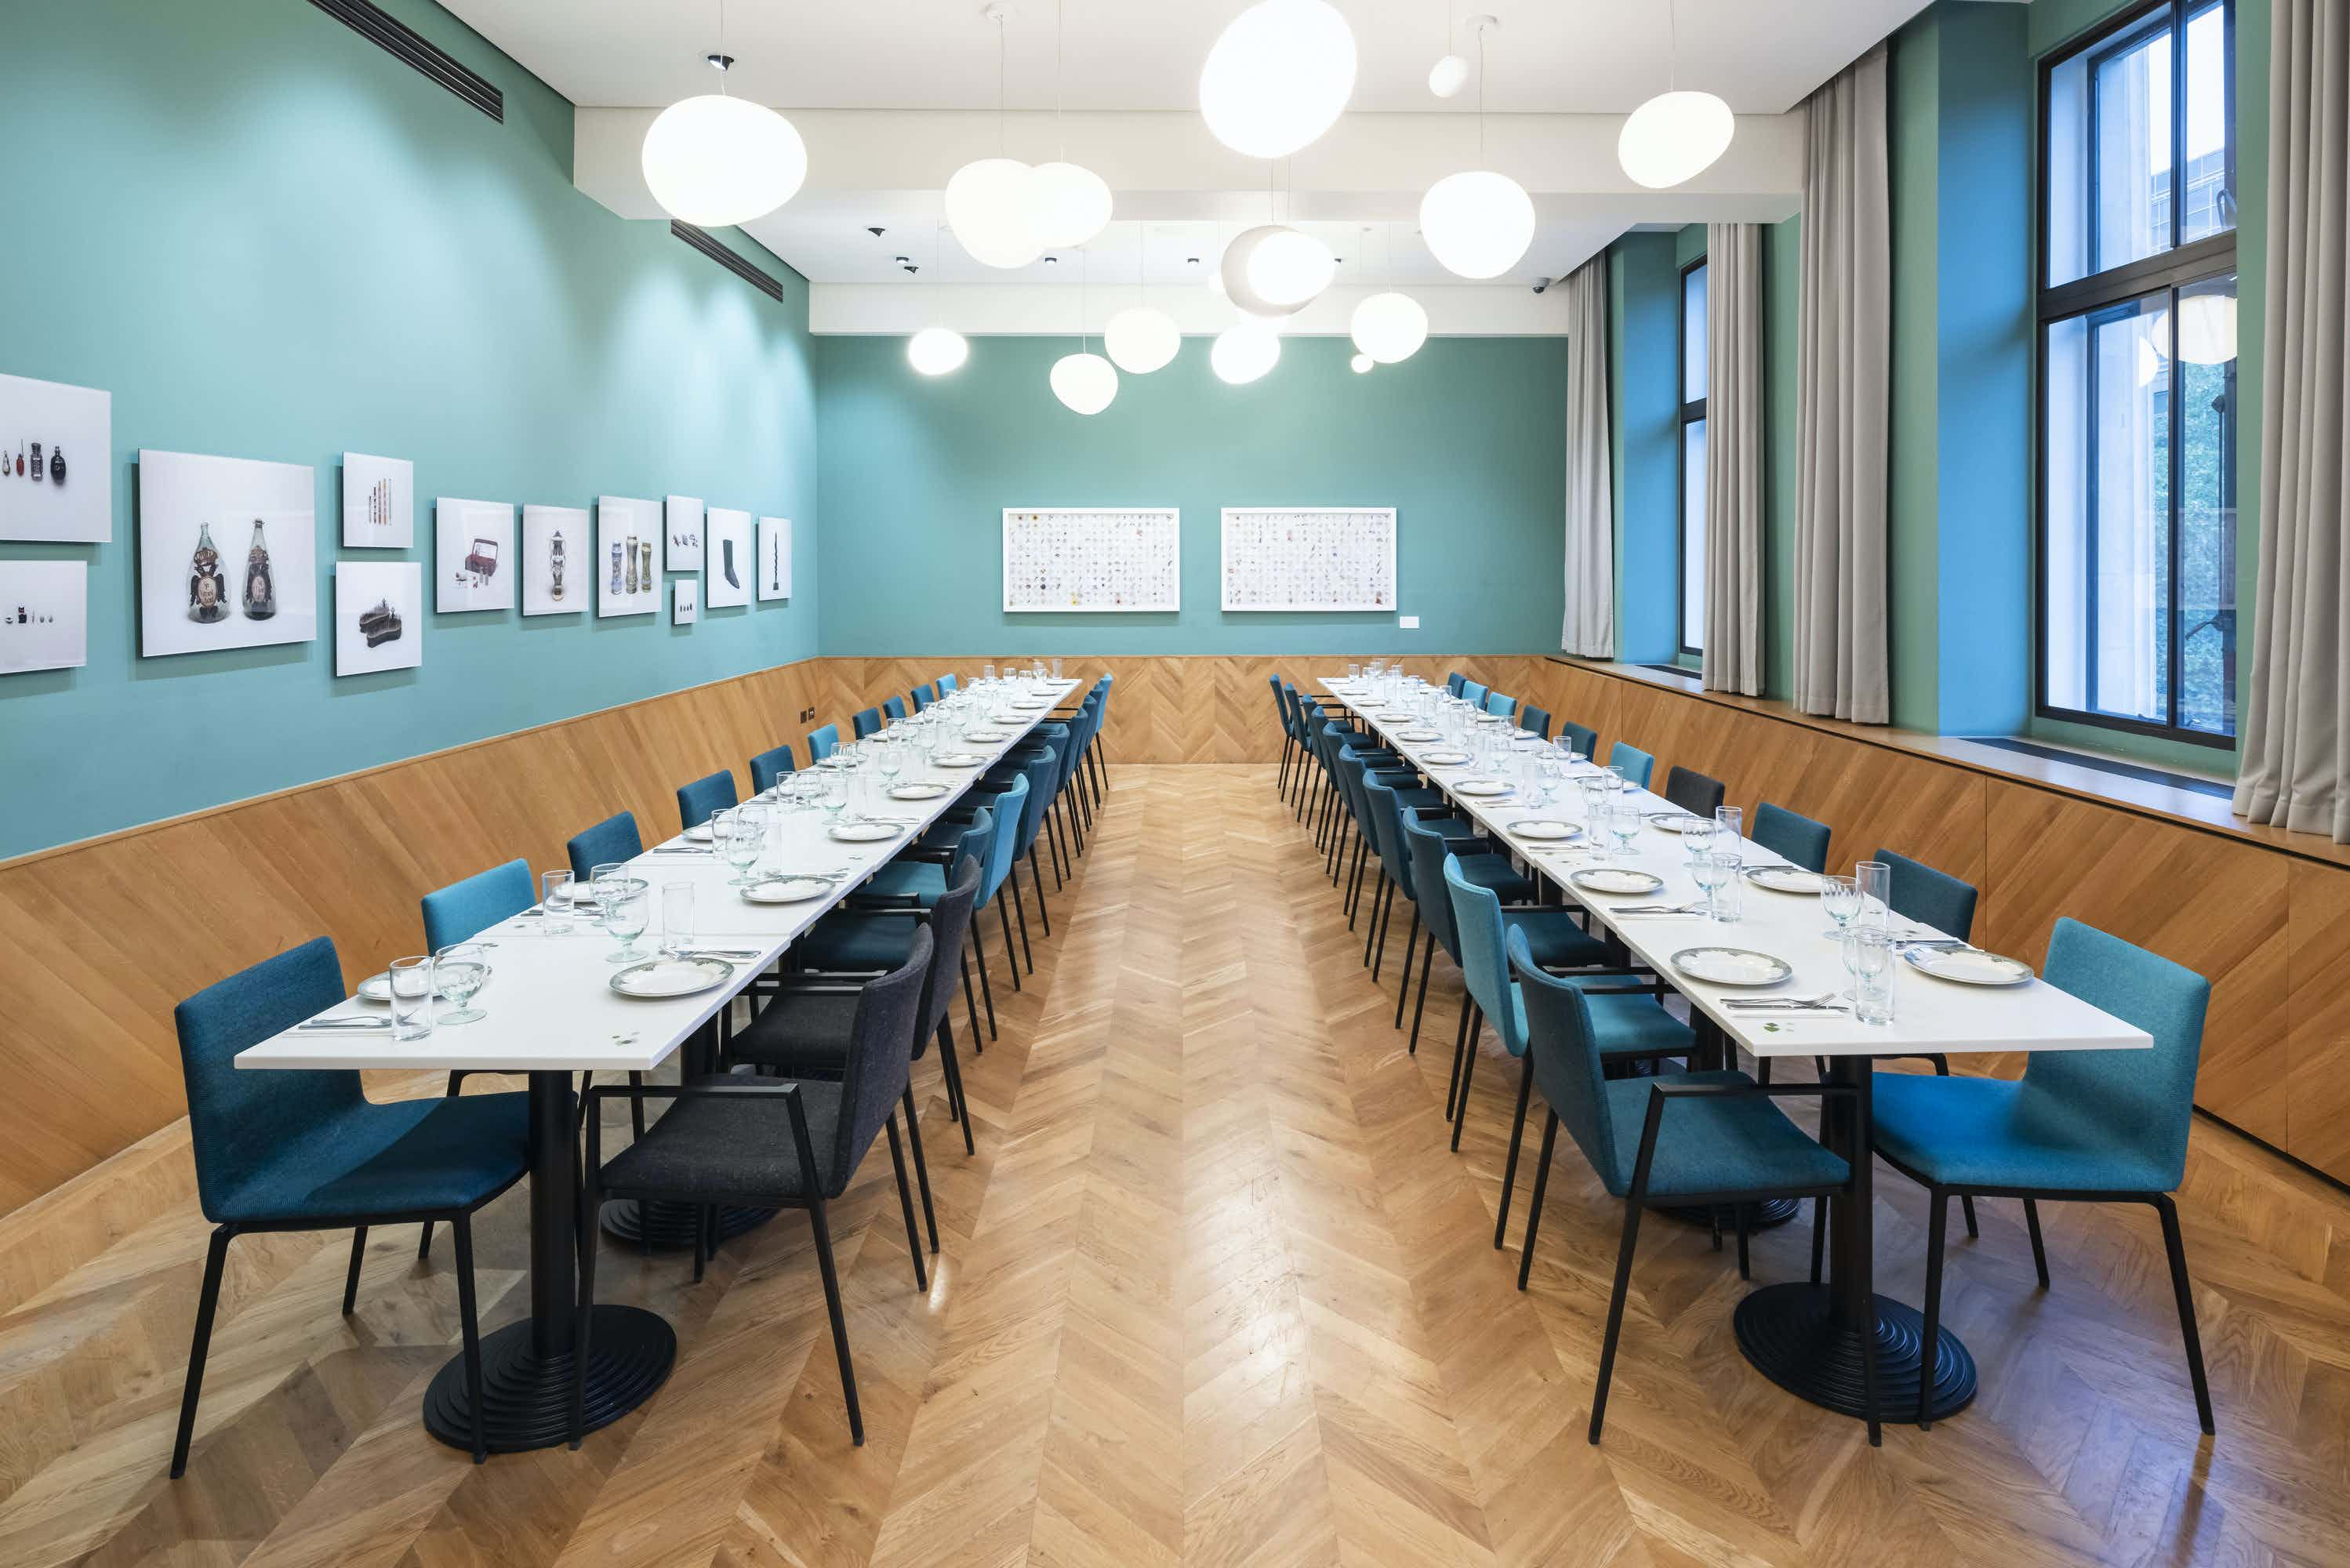 Private Dining Room, Event Spaces at Wellcome Collection